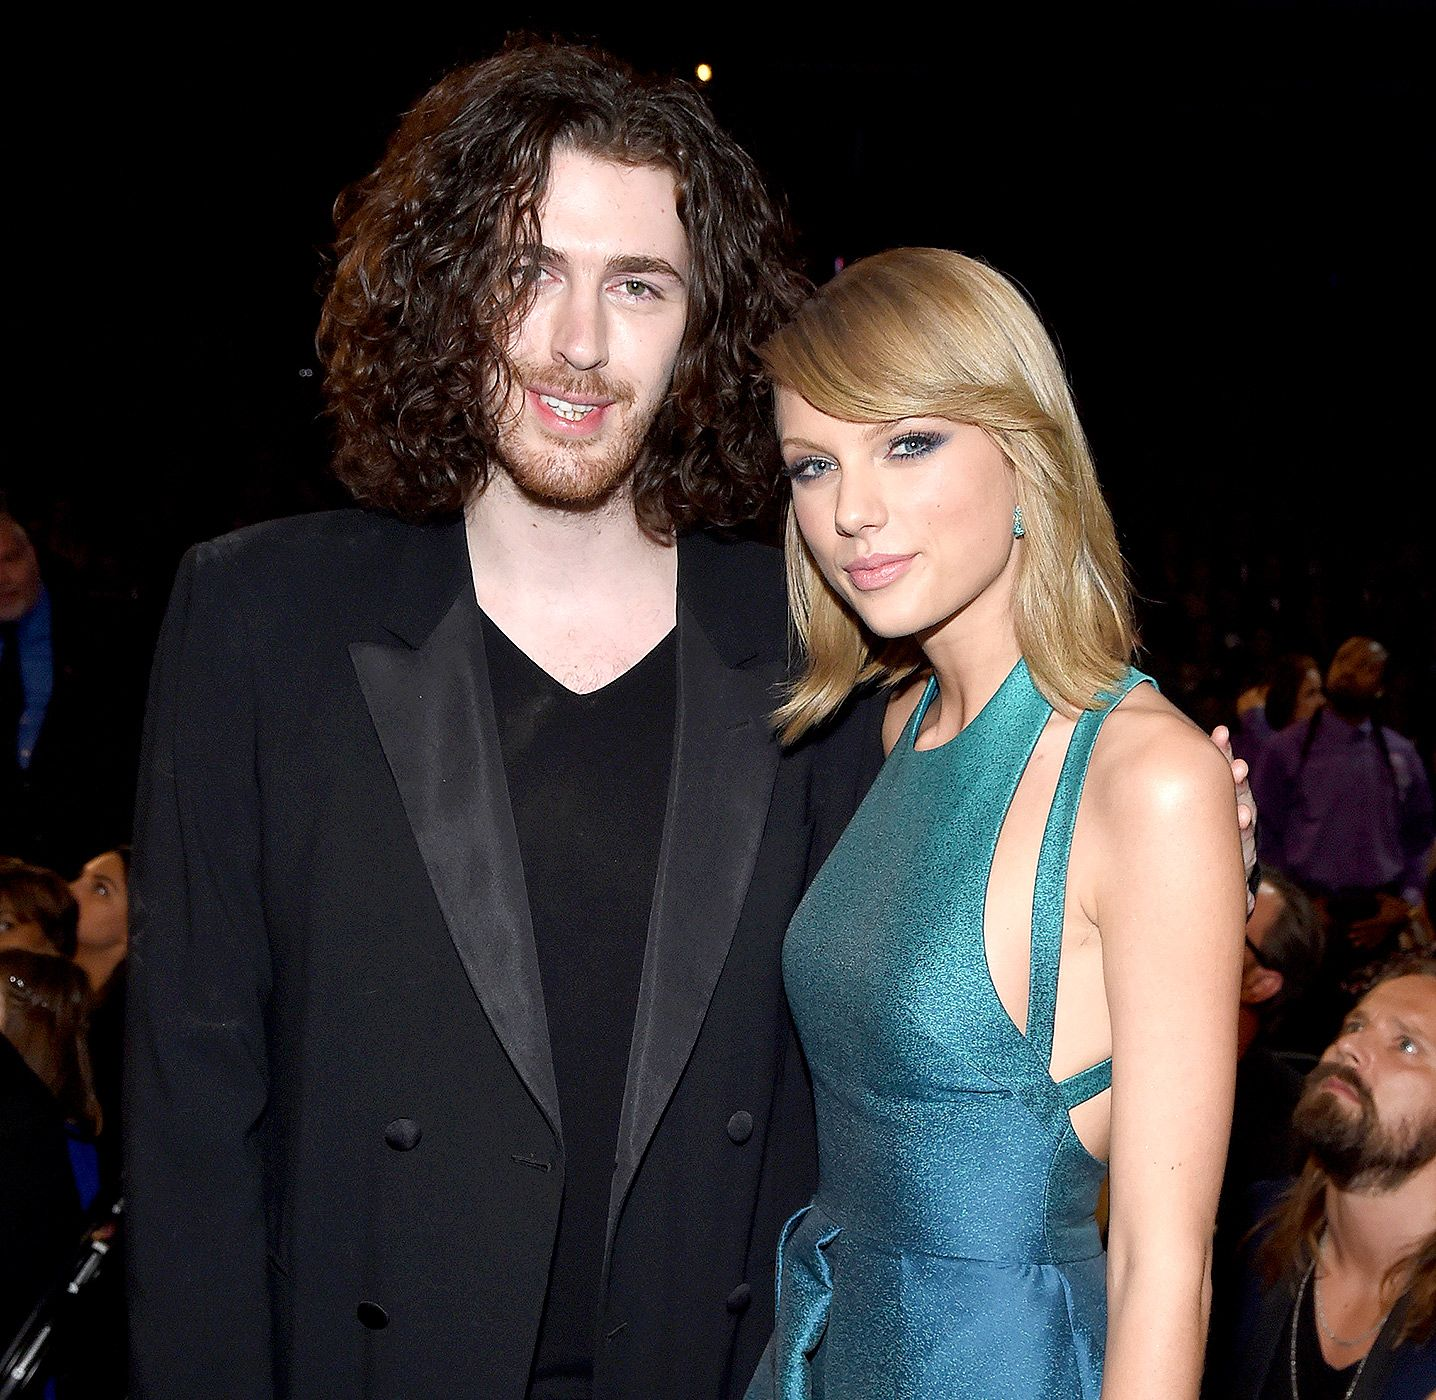 hozier and girls - Google Search